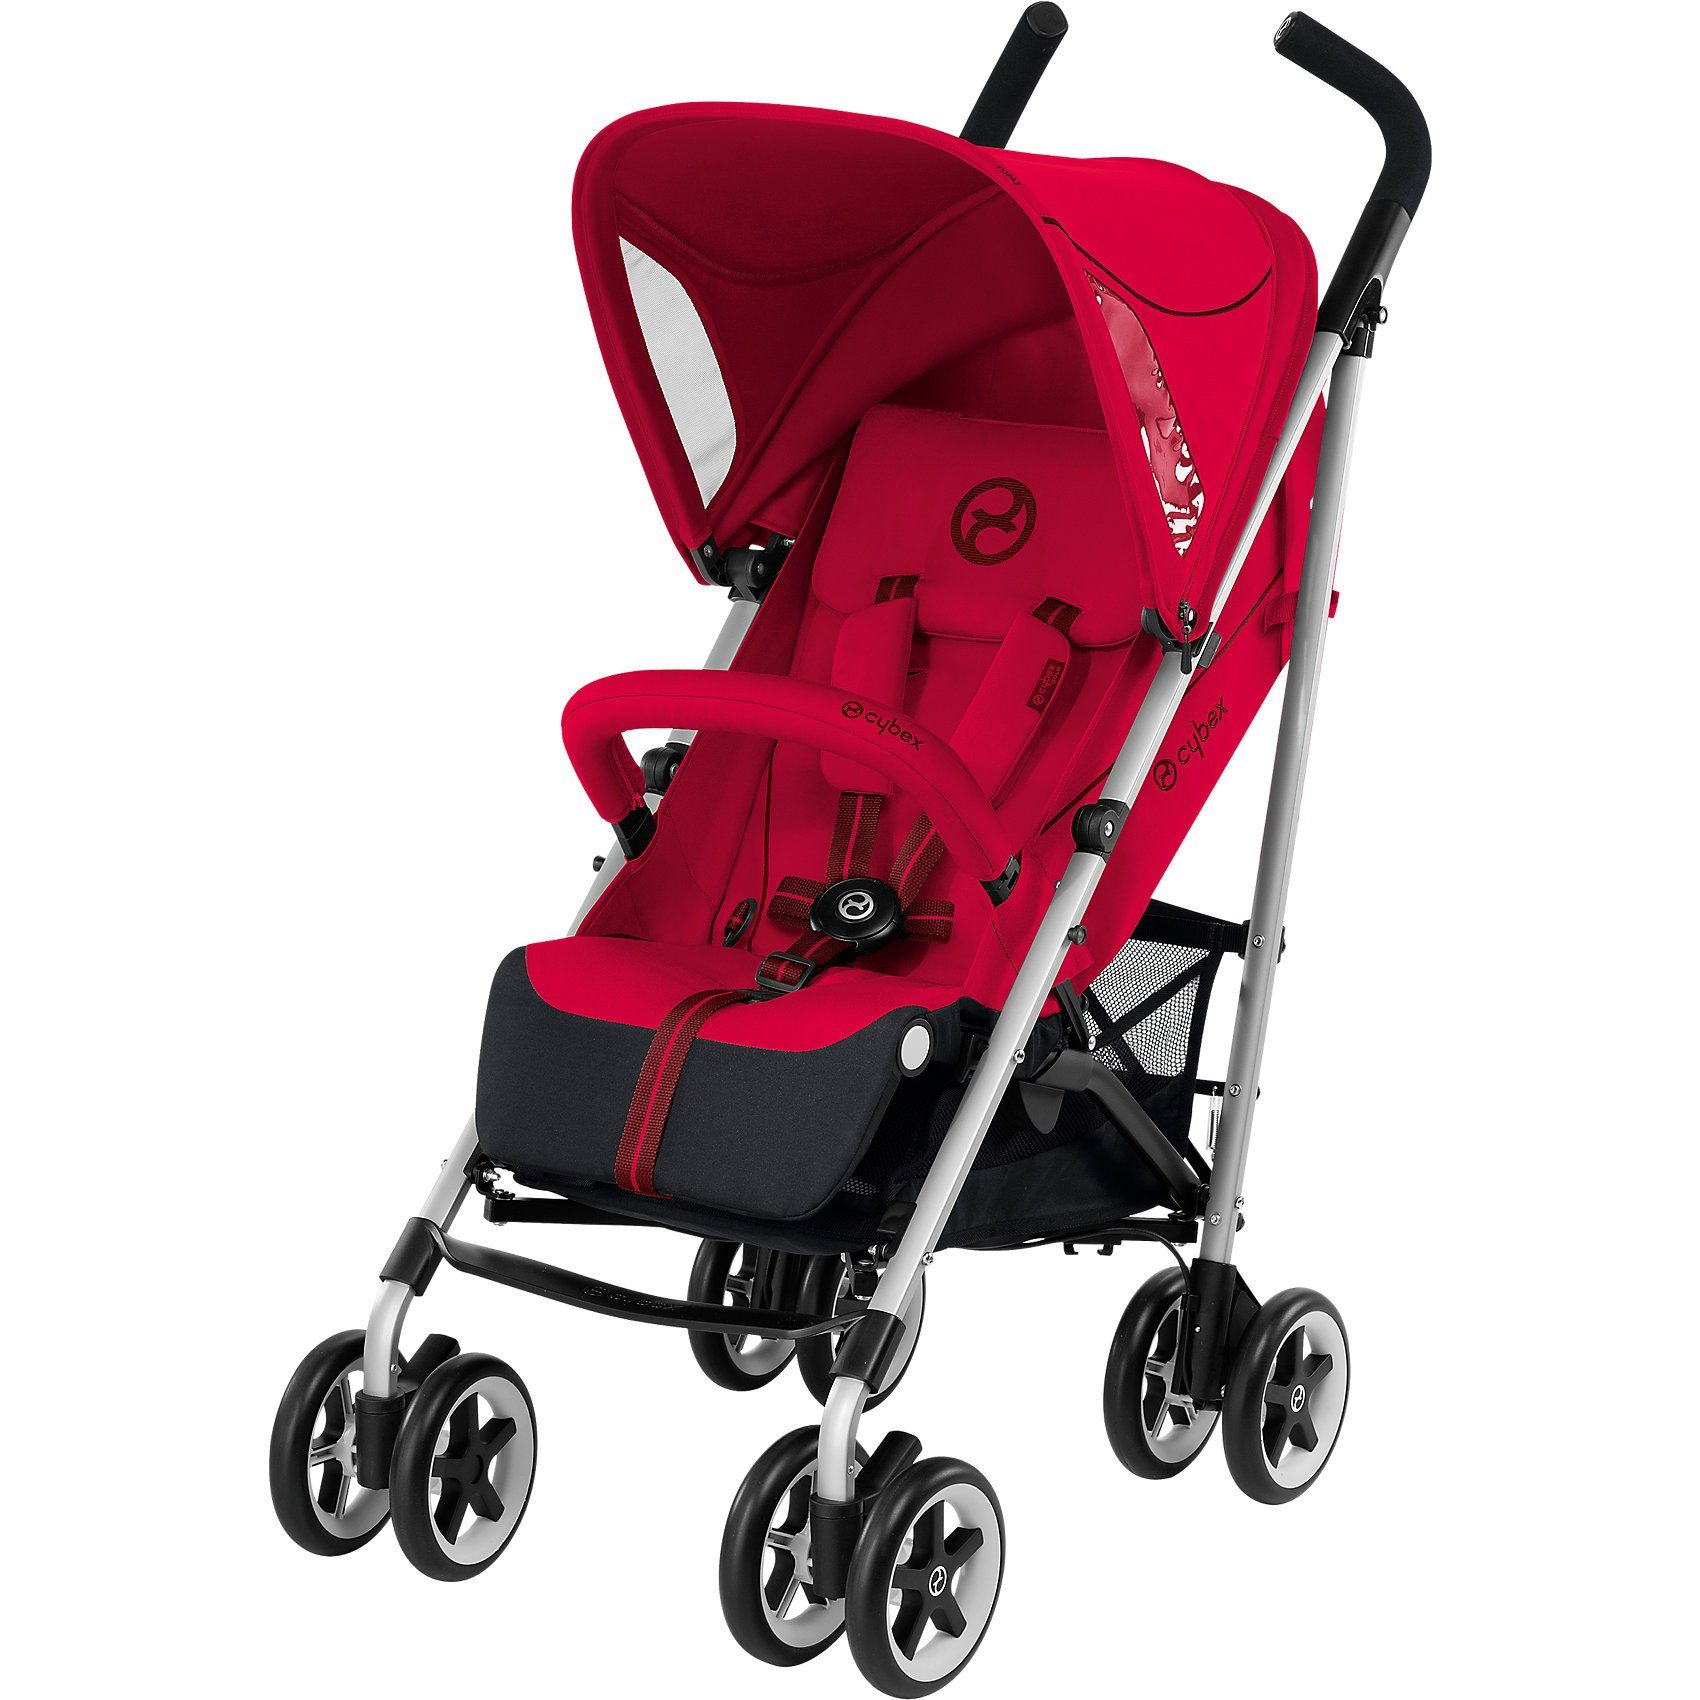 Cybex Buggy Topaz B, Gold-Line, Infra Red-Red, 2017